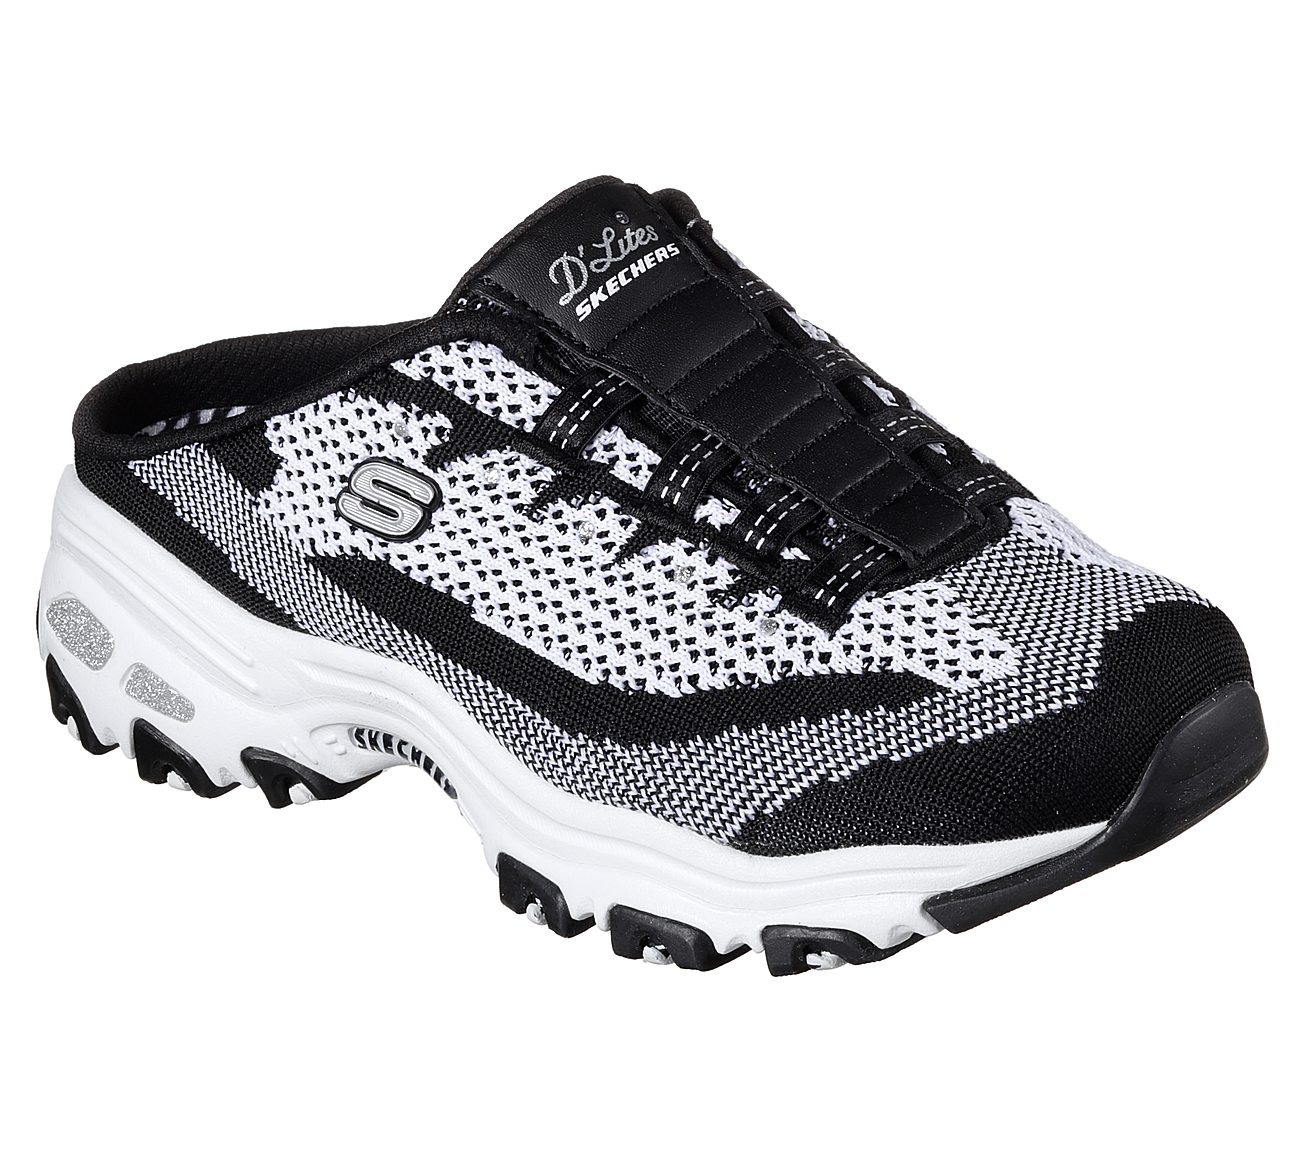 Buy SKECHERS D Lites - A New Leaf D Lites Shoes only  46.90 24d5f1e2d2d4